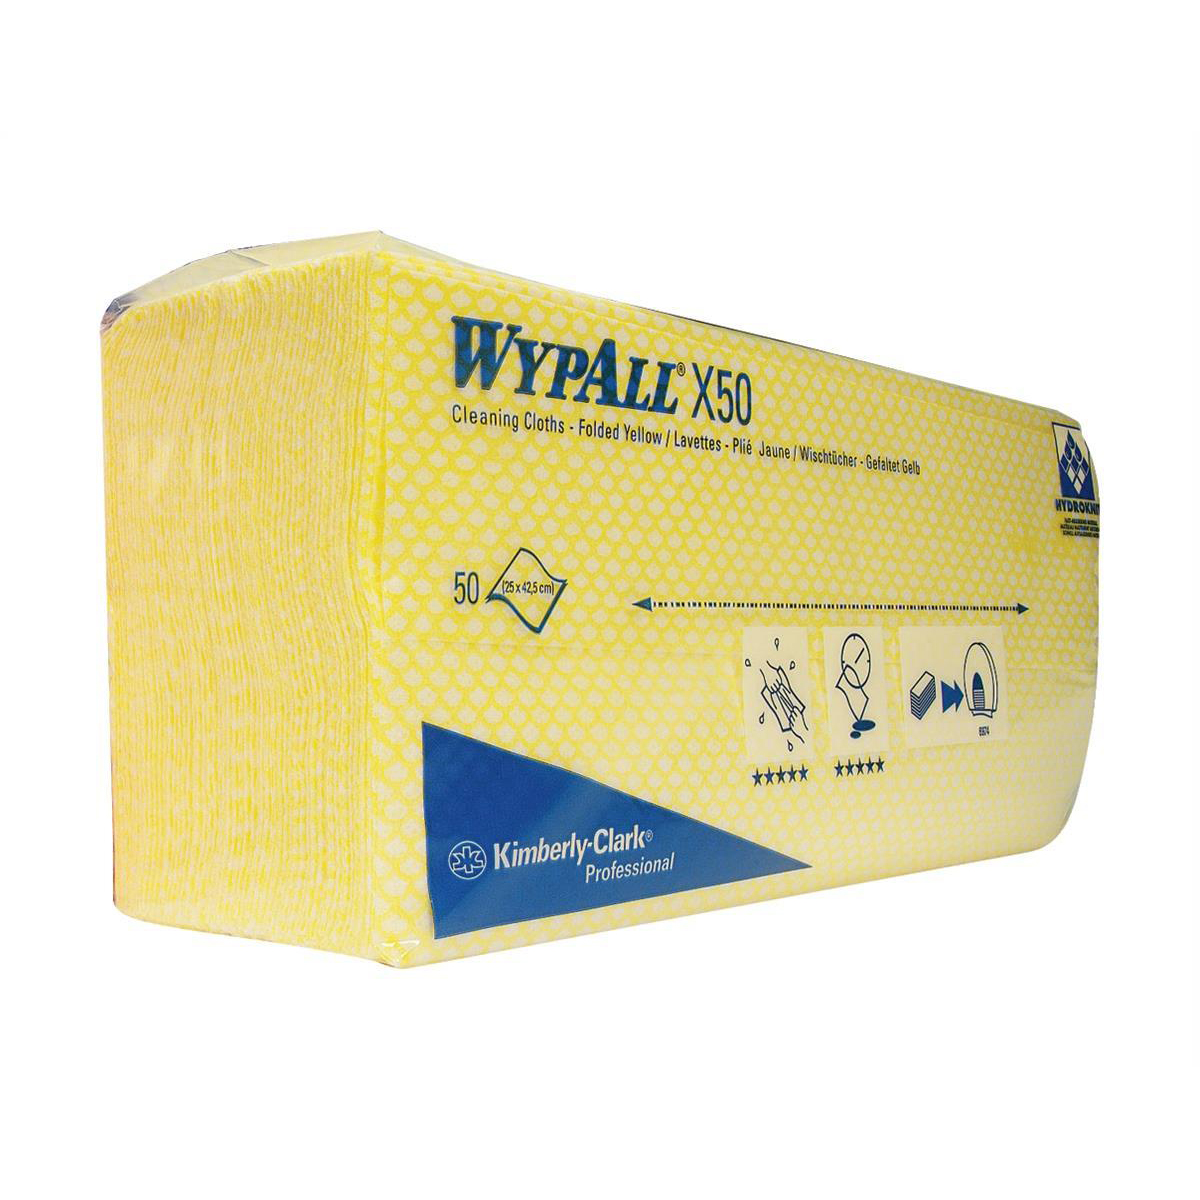 Wypall X50 Cleaning Cloths Absorbent Strong Non-woven Tear-resistant Yellow Ref 7443 Pack 50